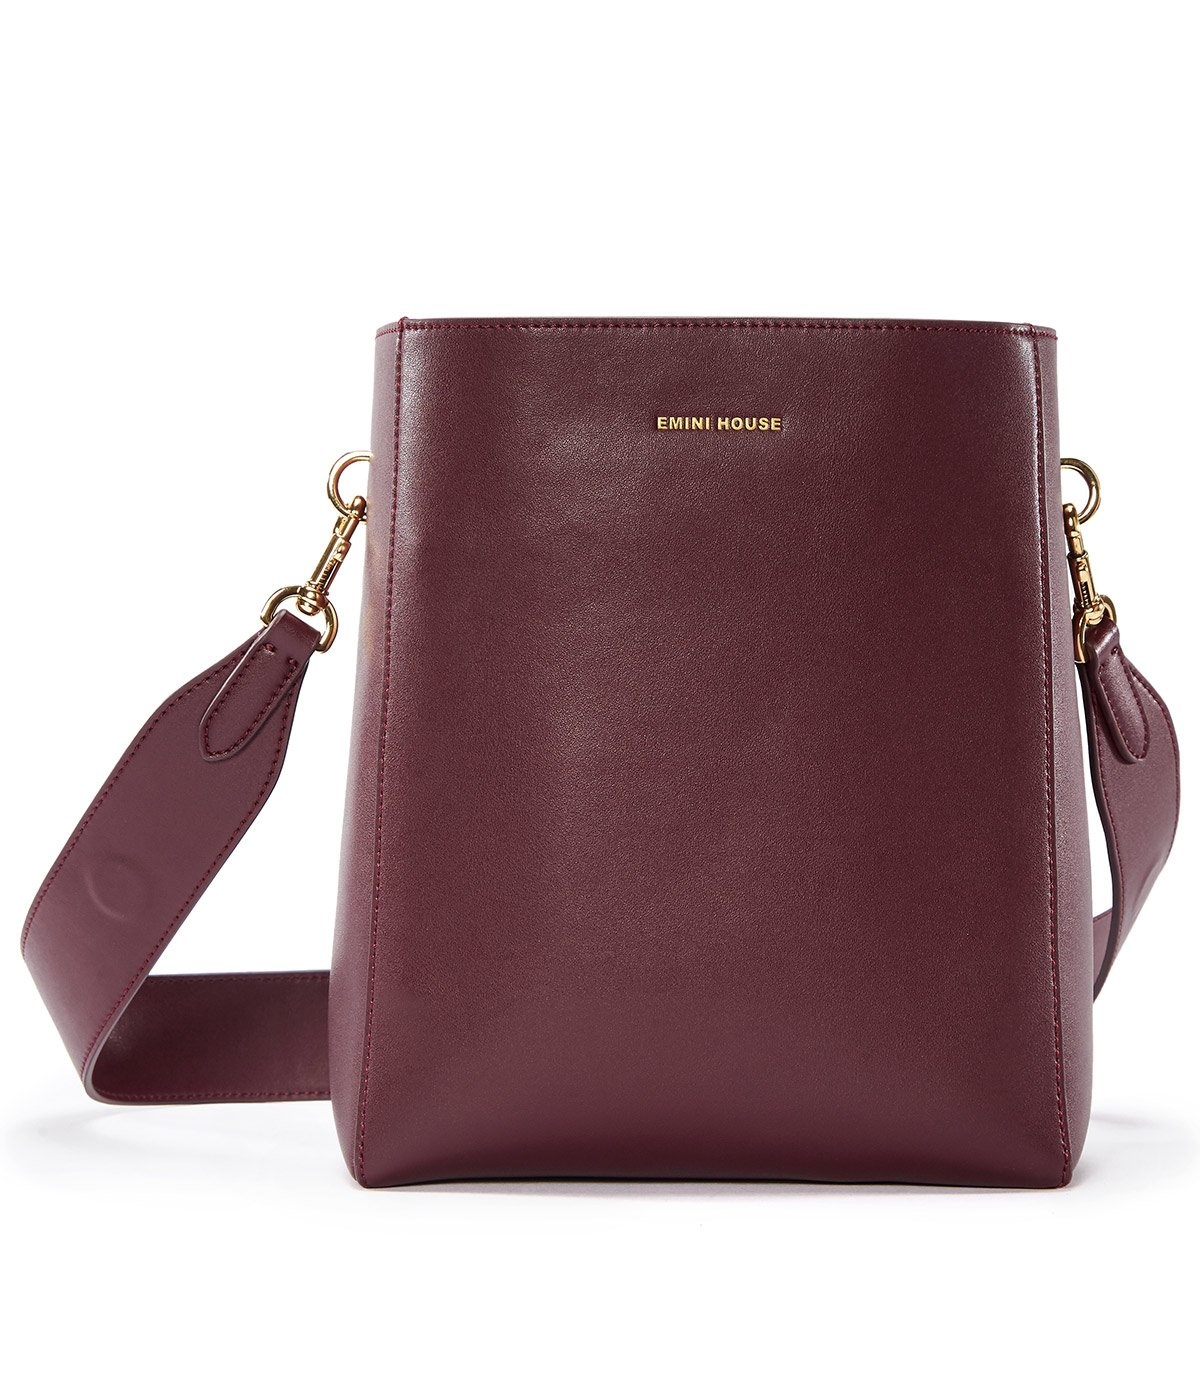 EMINI HOUSE Concise Bucket Bag with Magnetic Snap Women Bag-Wine Red